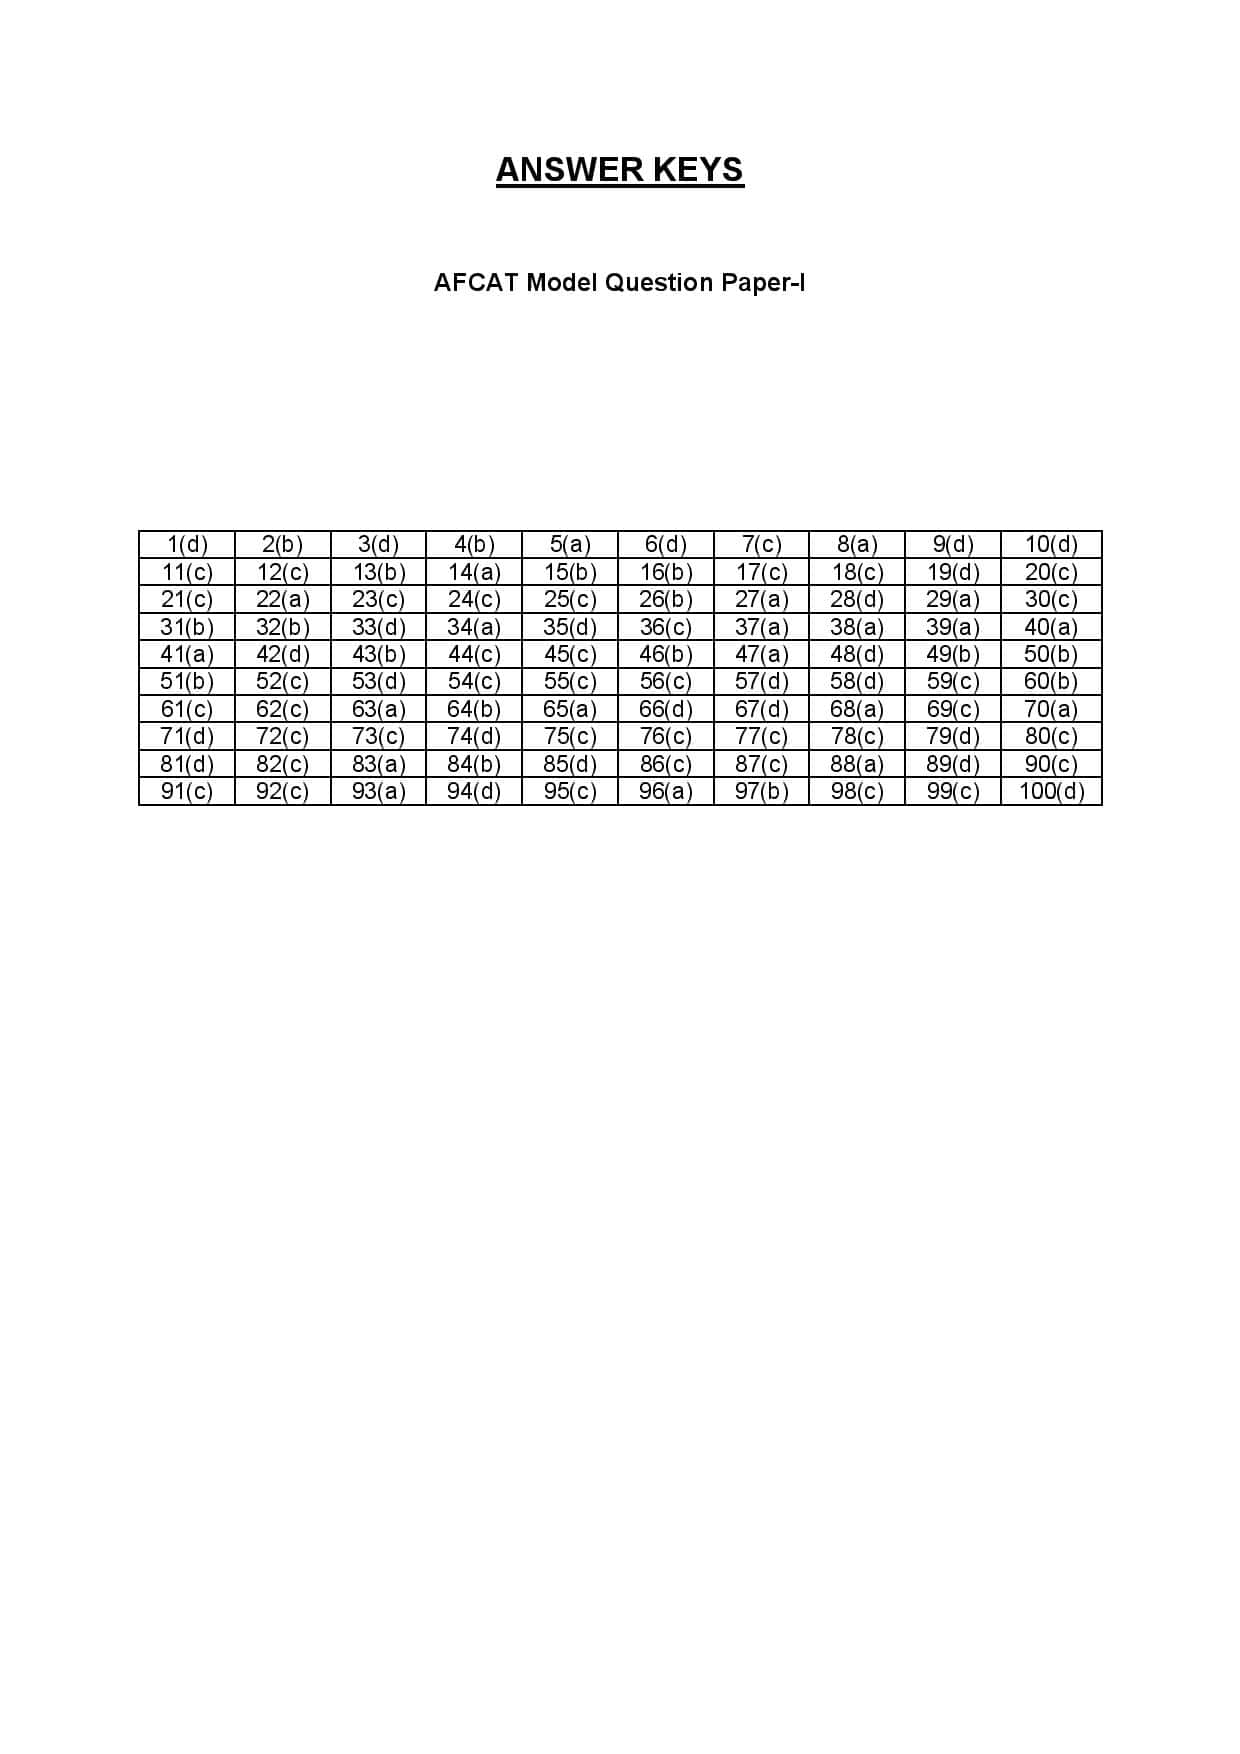 AFCAT 2020 Answer Key